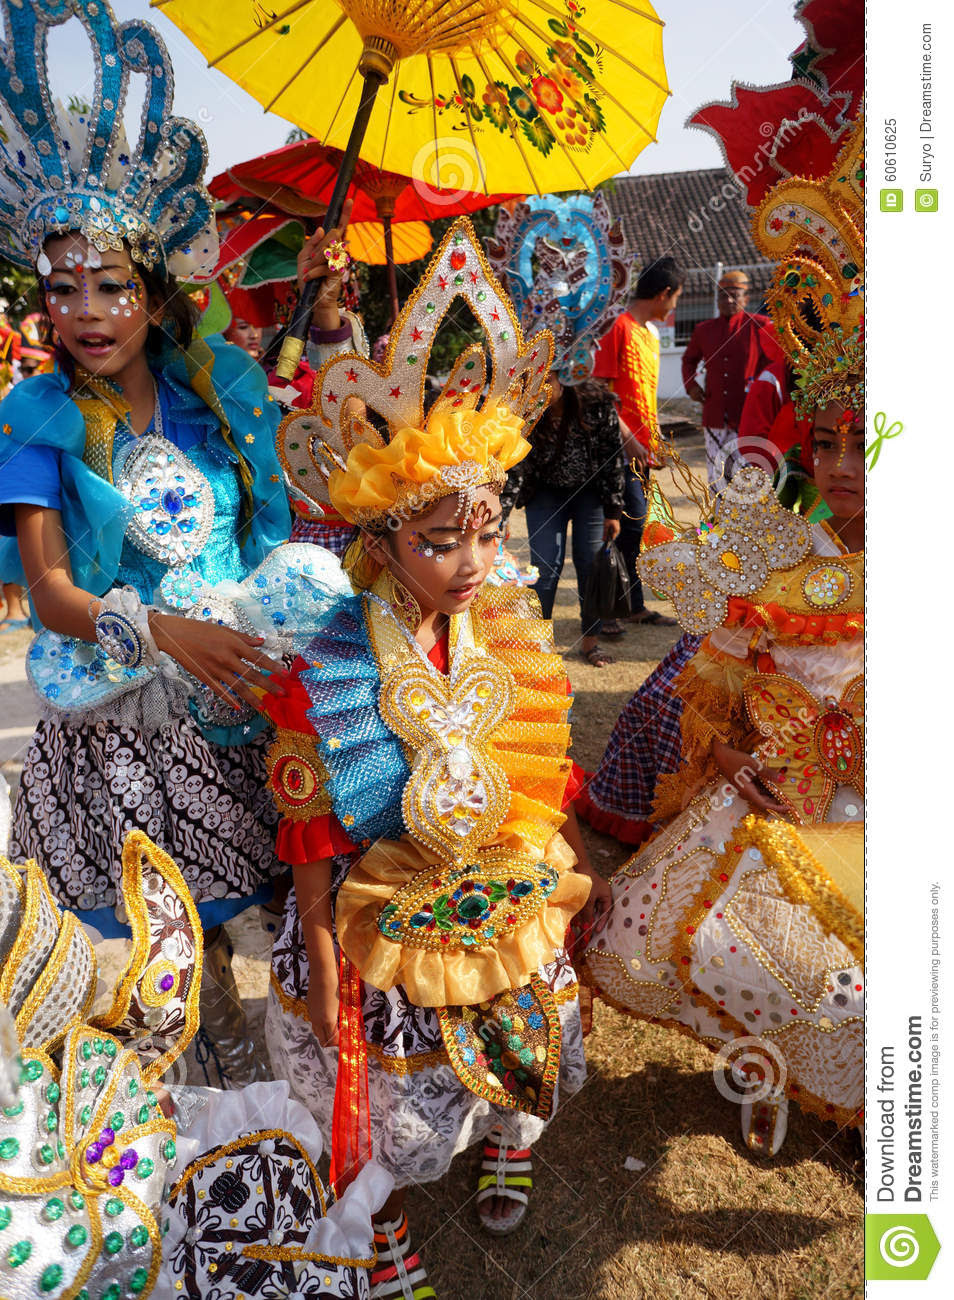 Carnival Editorial Image  Image: 60610625